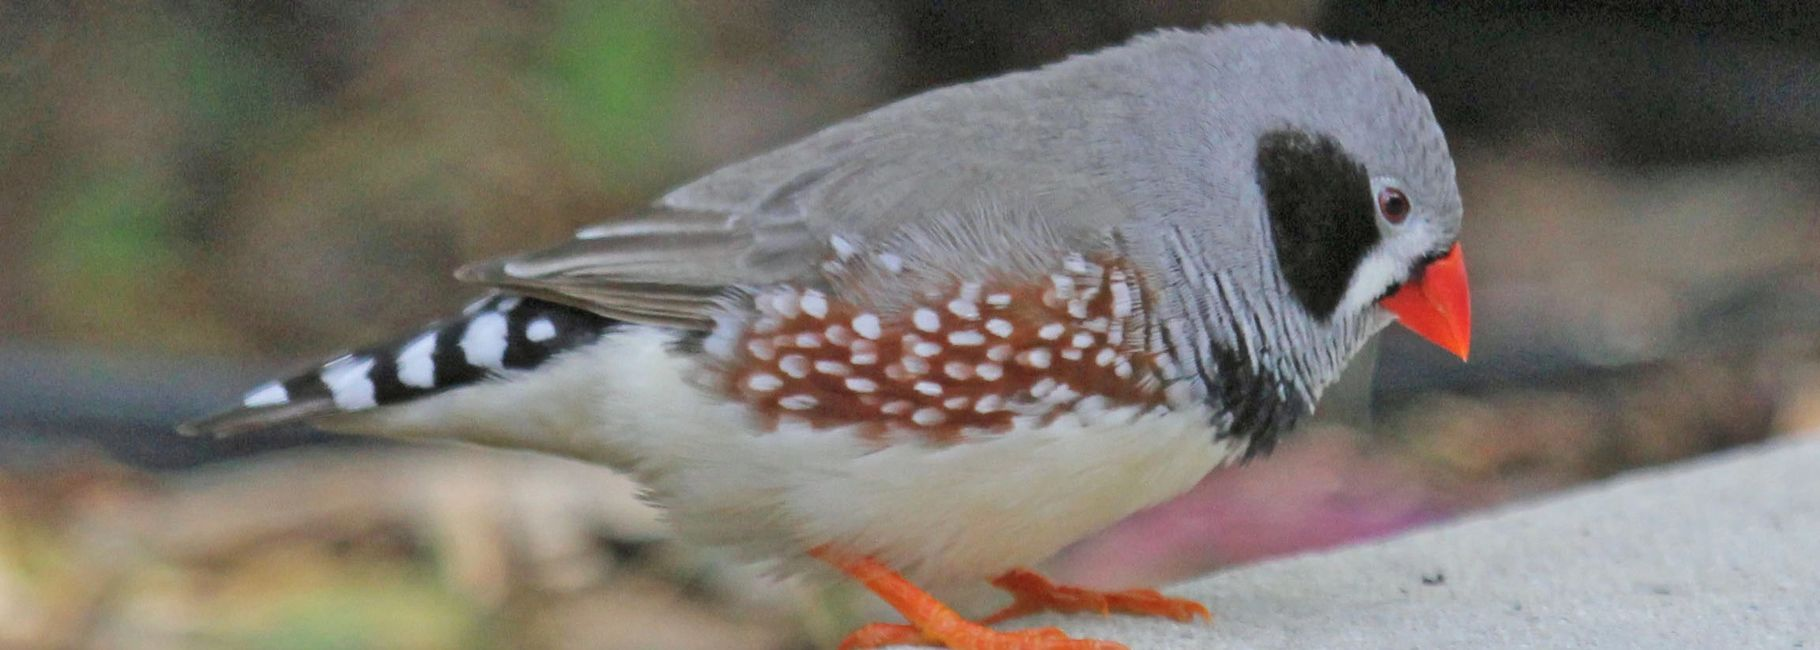 zebra finch for sale in florida